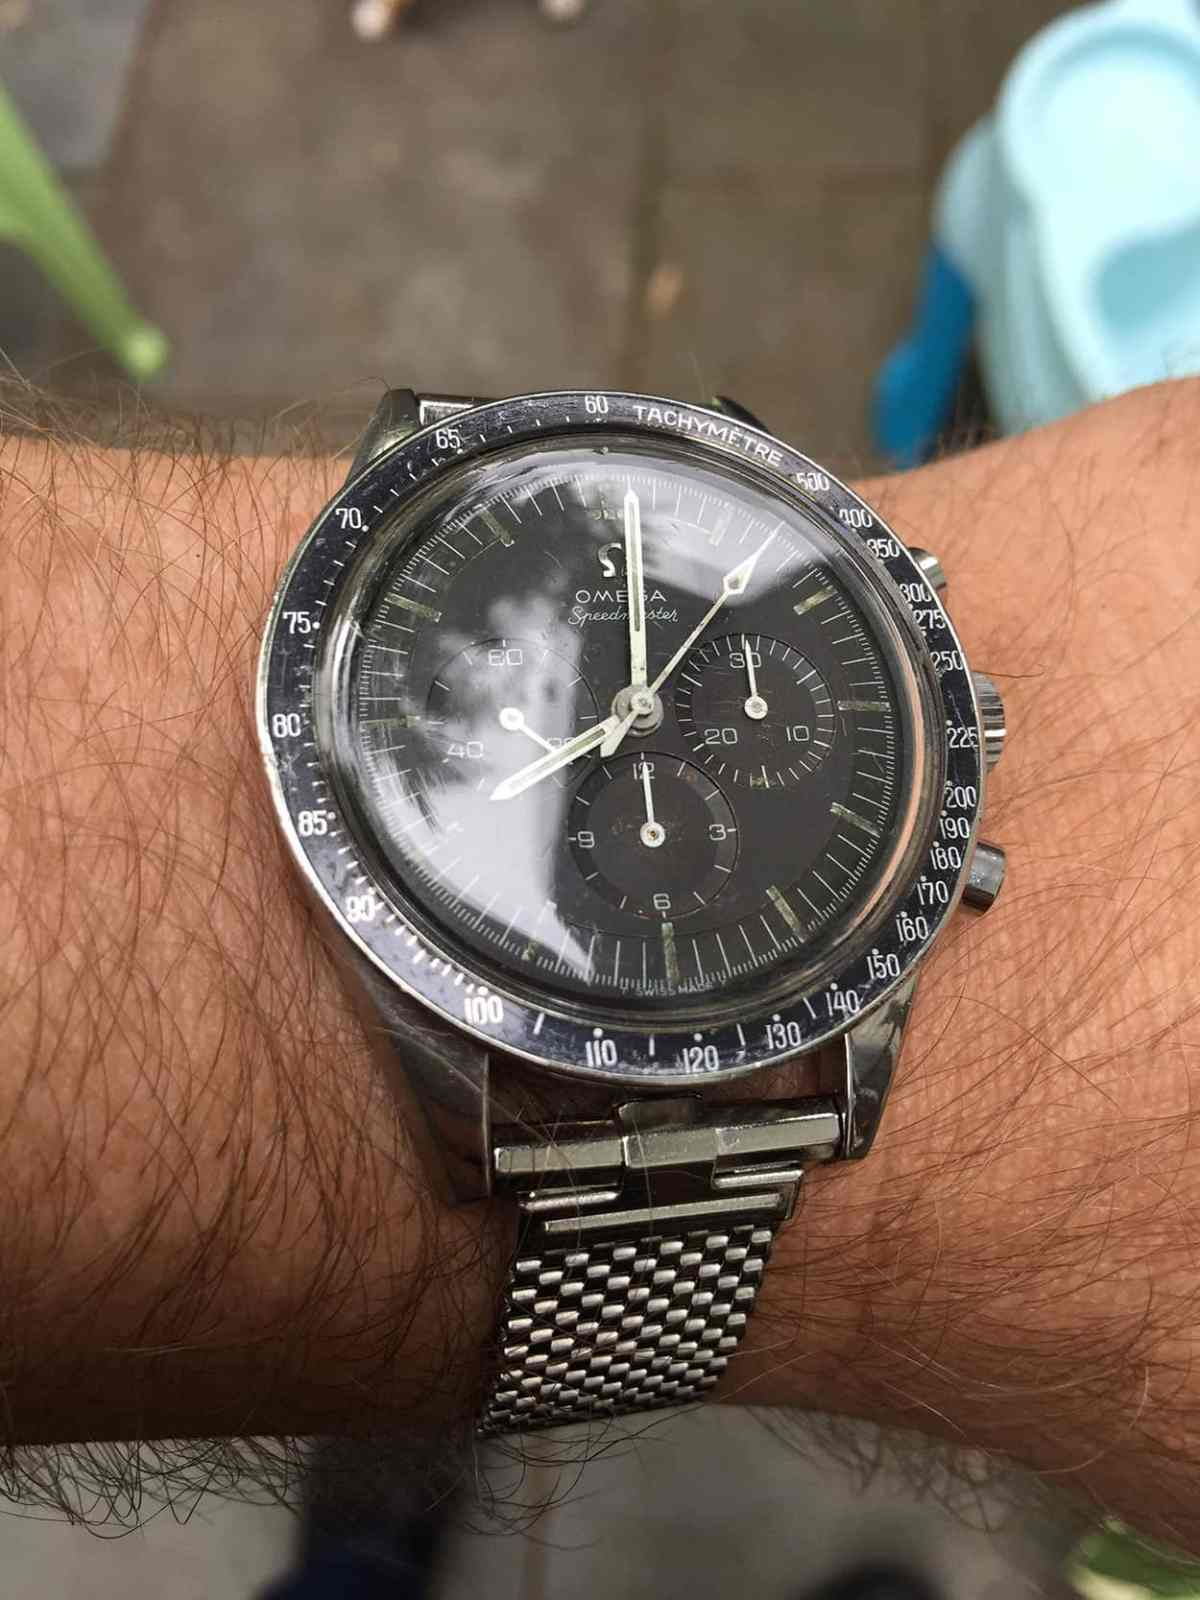 Speedmaster Watches